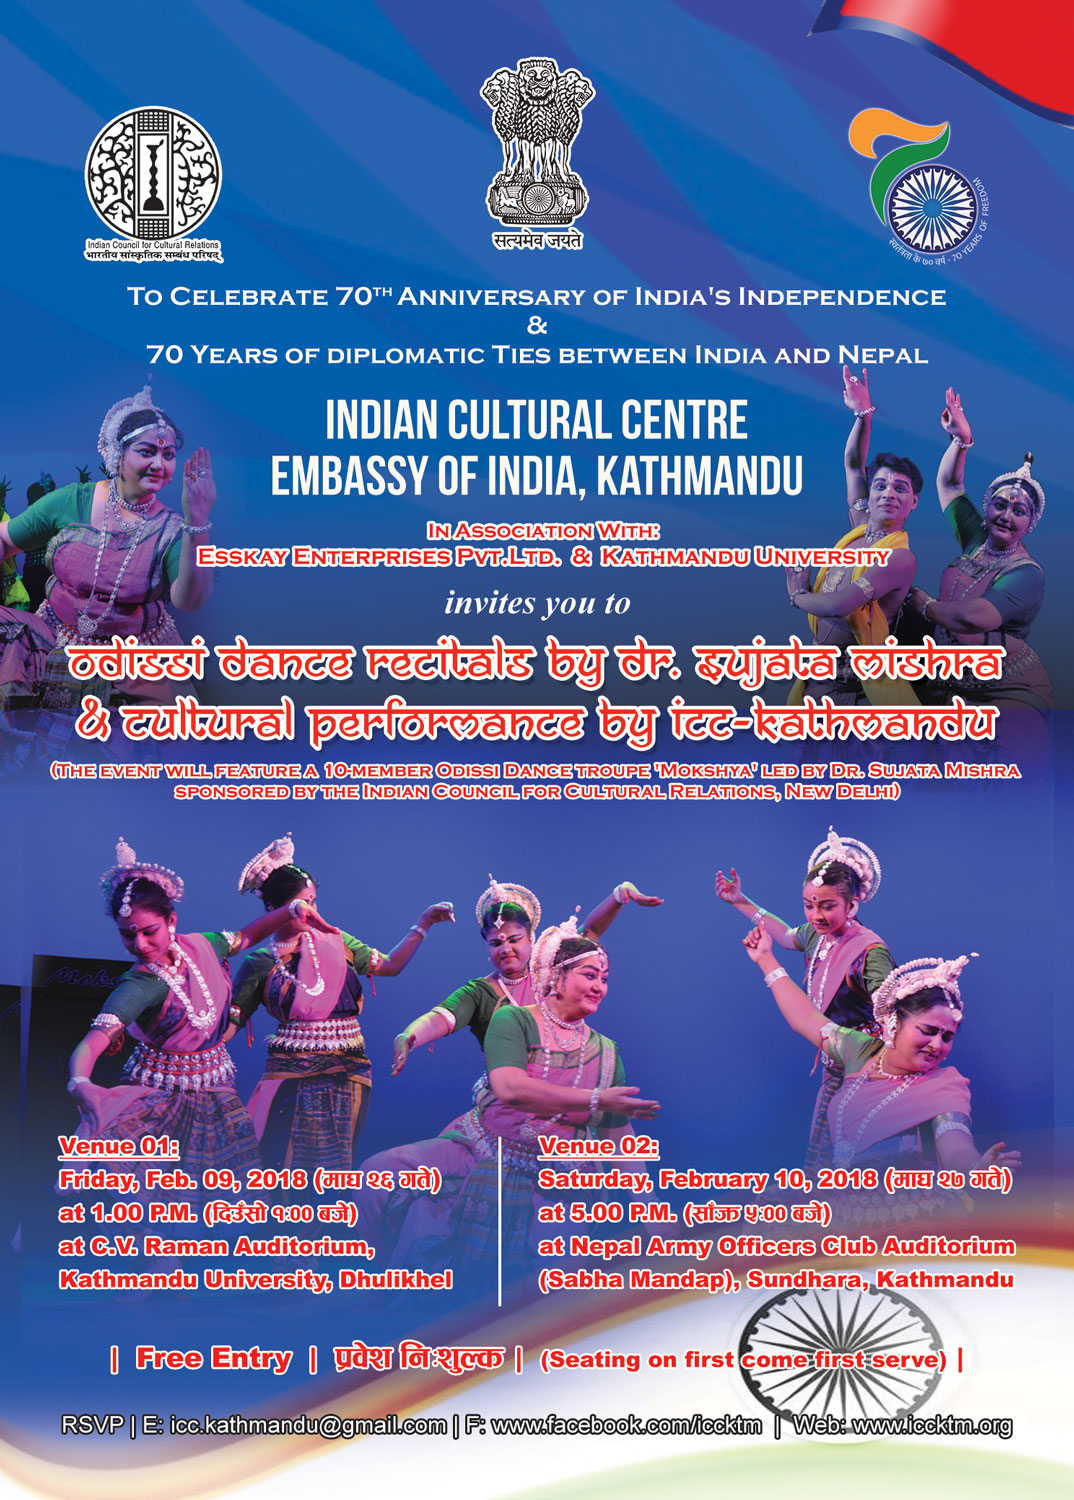 Kathmandu University News February 2018 Patient Monitor Esskay Institute Invitation To Odissi Dance Recitals By Dr Sujala Mishra